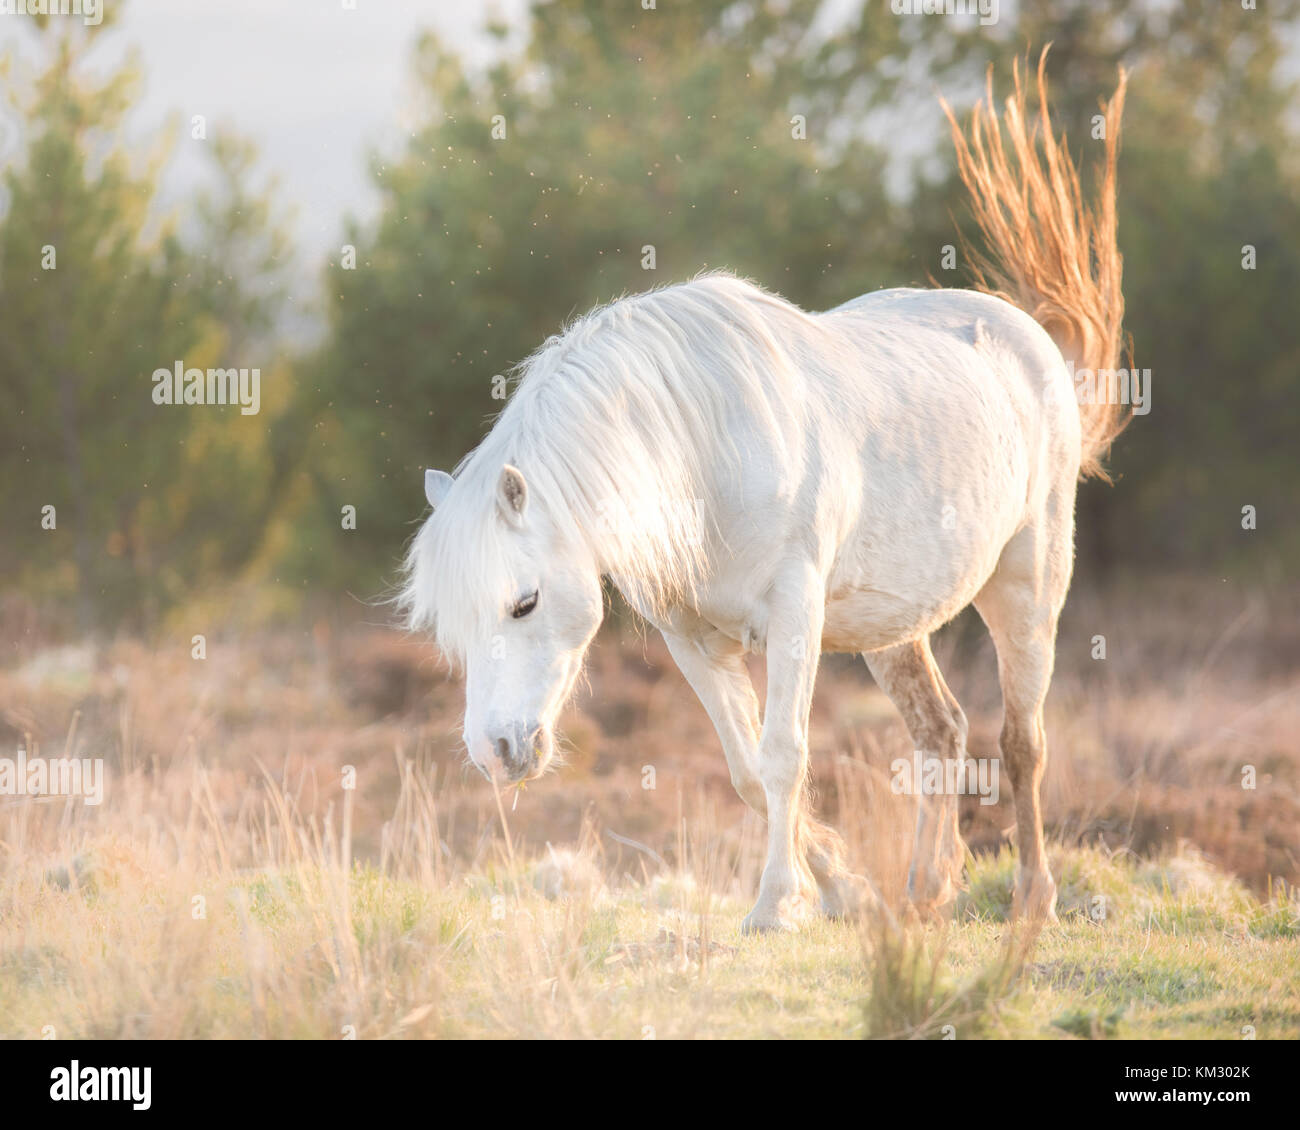 White horse - Andalusian stallion and sunset scenery Stock Photo